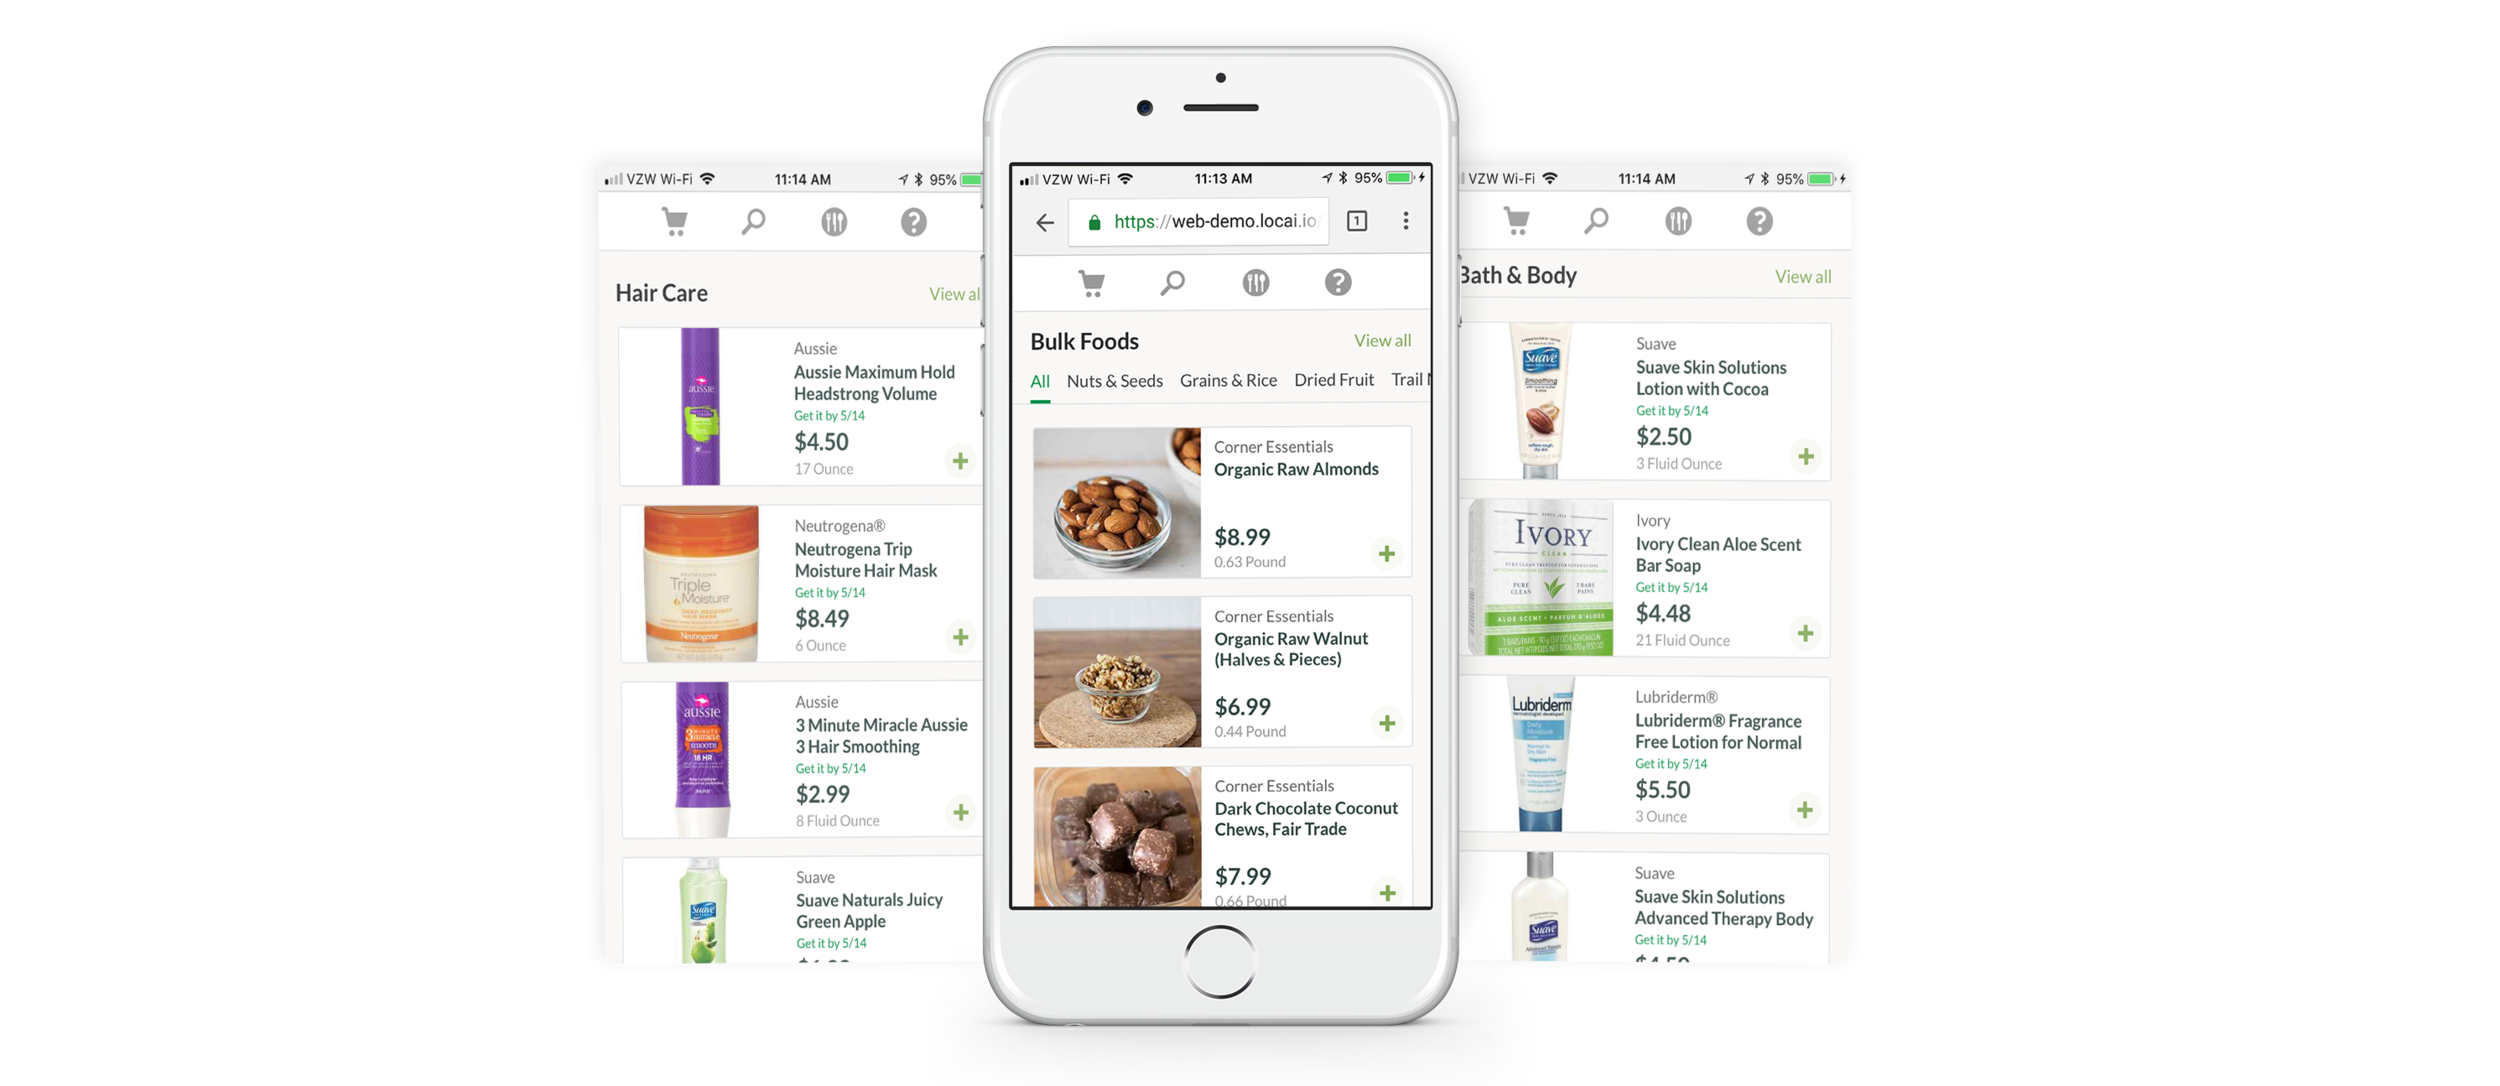 Three smart phone showing online shopping by category. The first displays hair care products, the second bulk foods, and the third bath and beauty products.